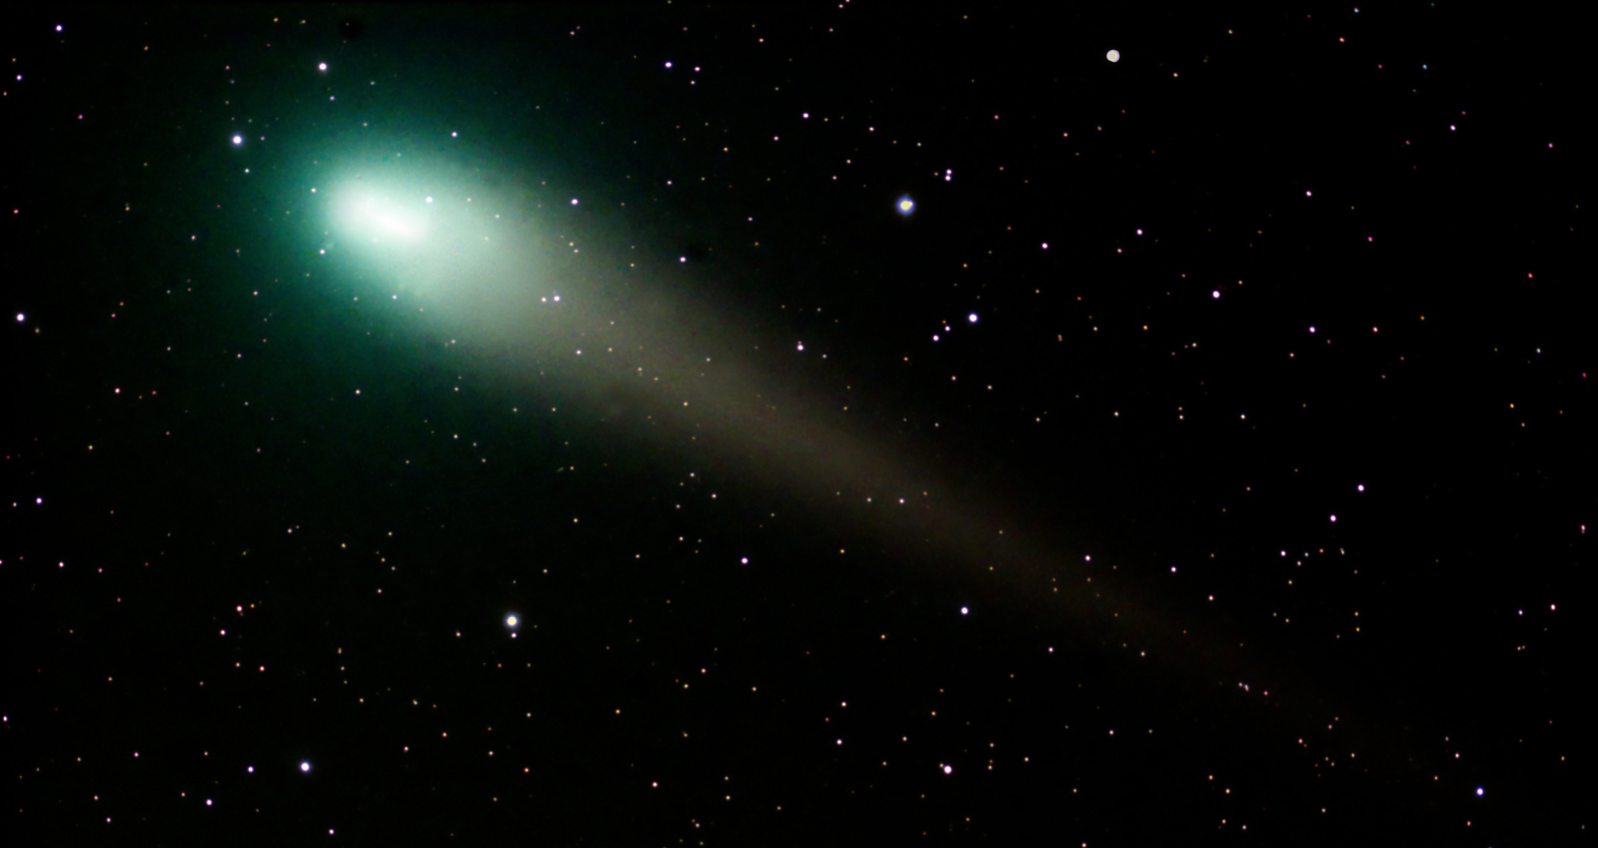 comet Lulin by richard higby